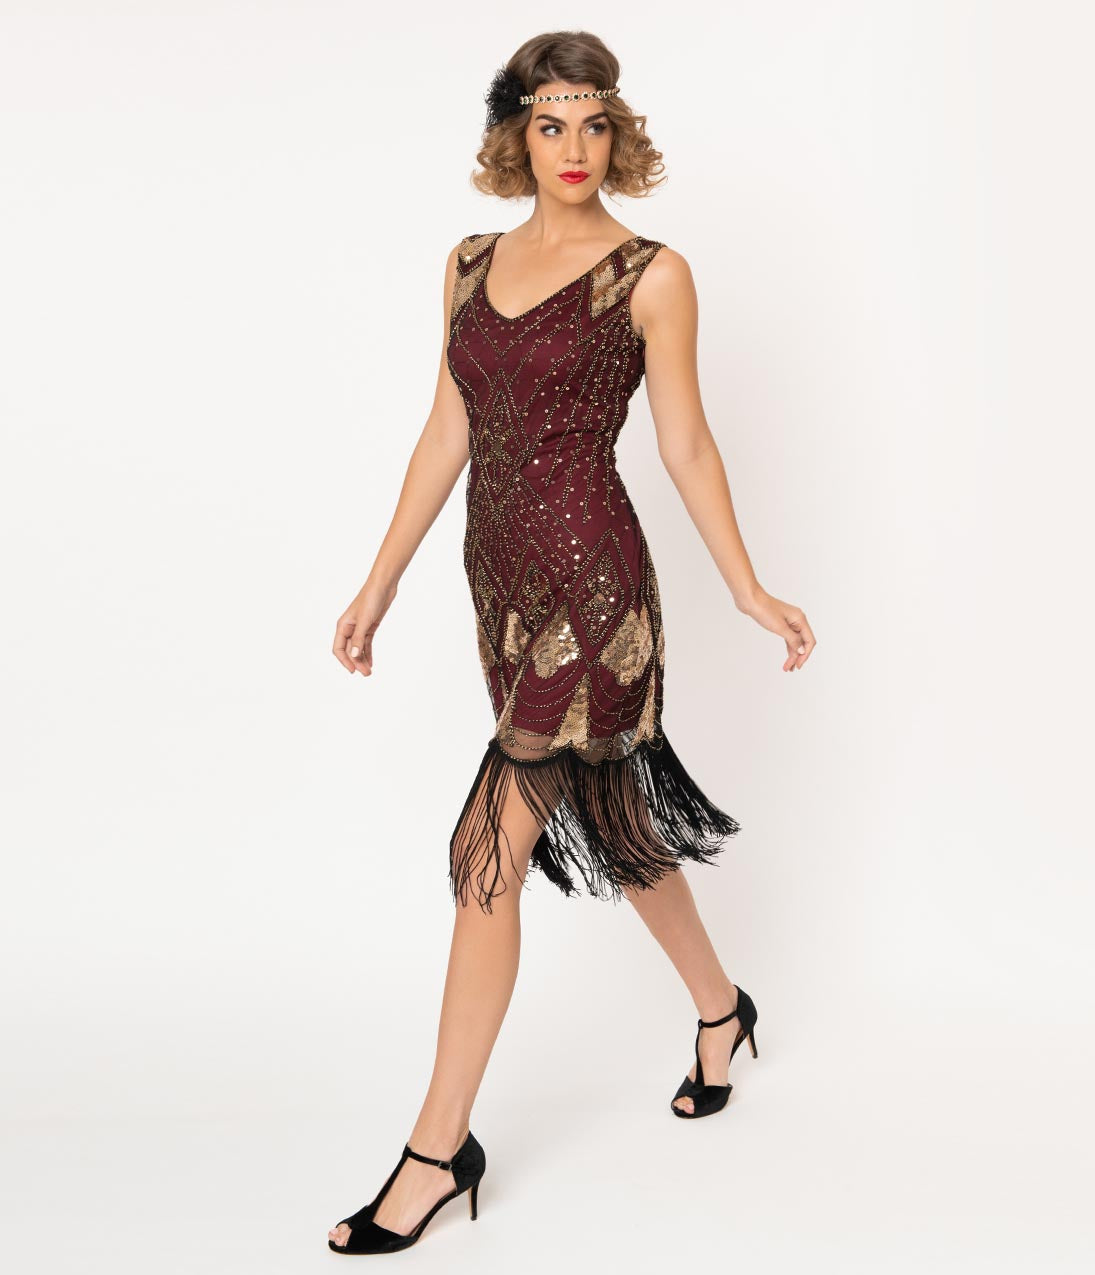 Best 1920s Prom Dresses – Great Gatsby Style Gowns Unique Vintage Burgundy  Gold Sequin Lina Fringe Flapper Dress $98.00 AT vintagedancer.com